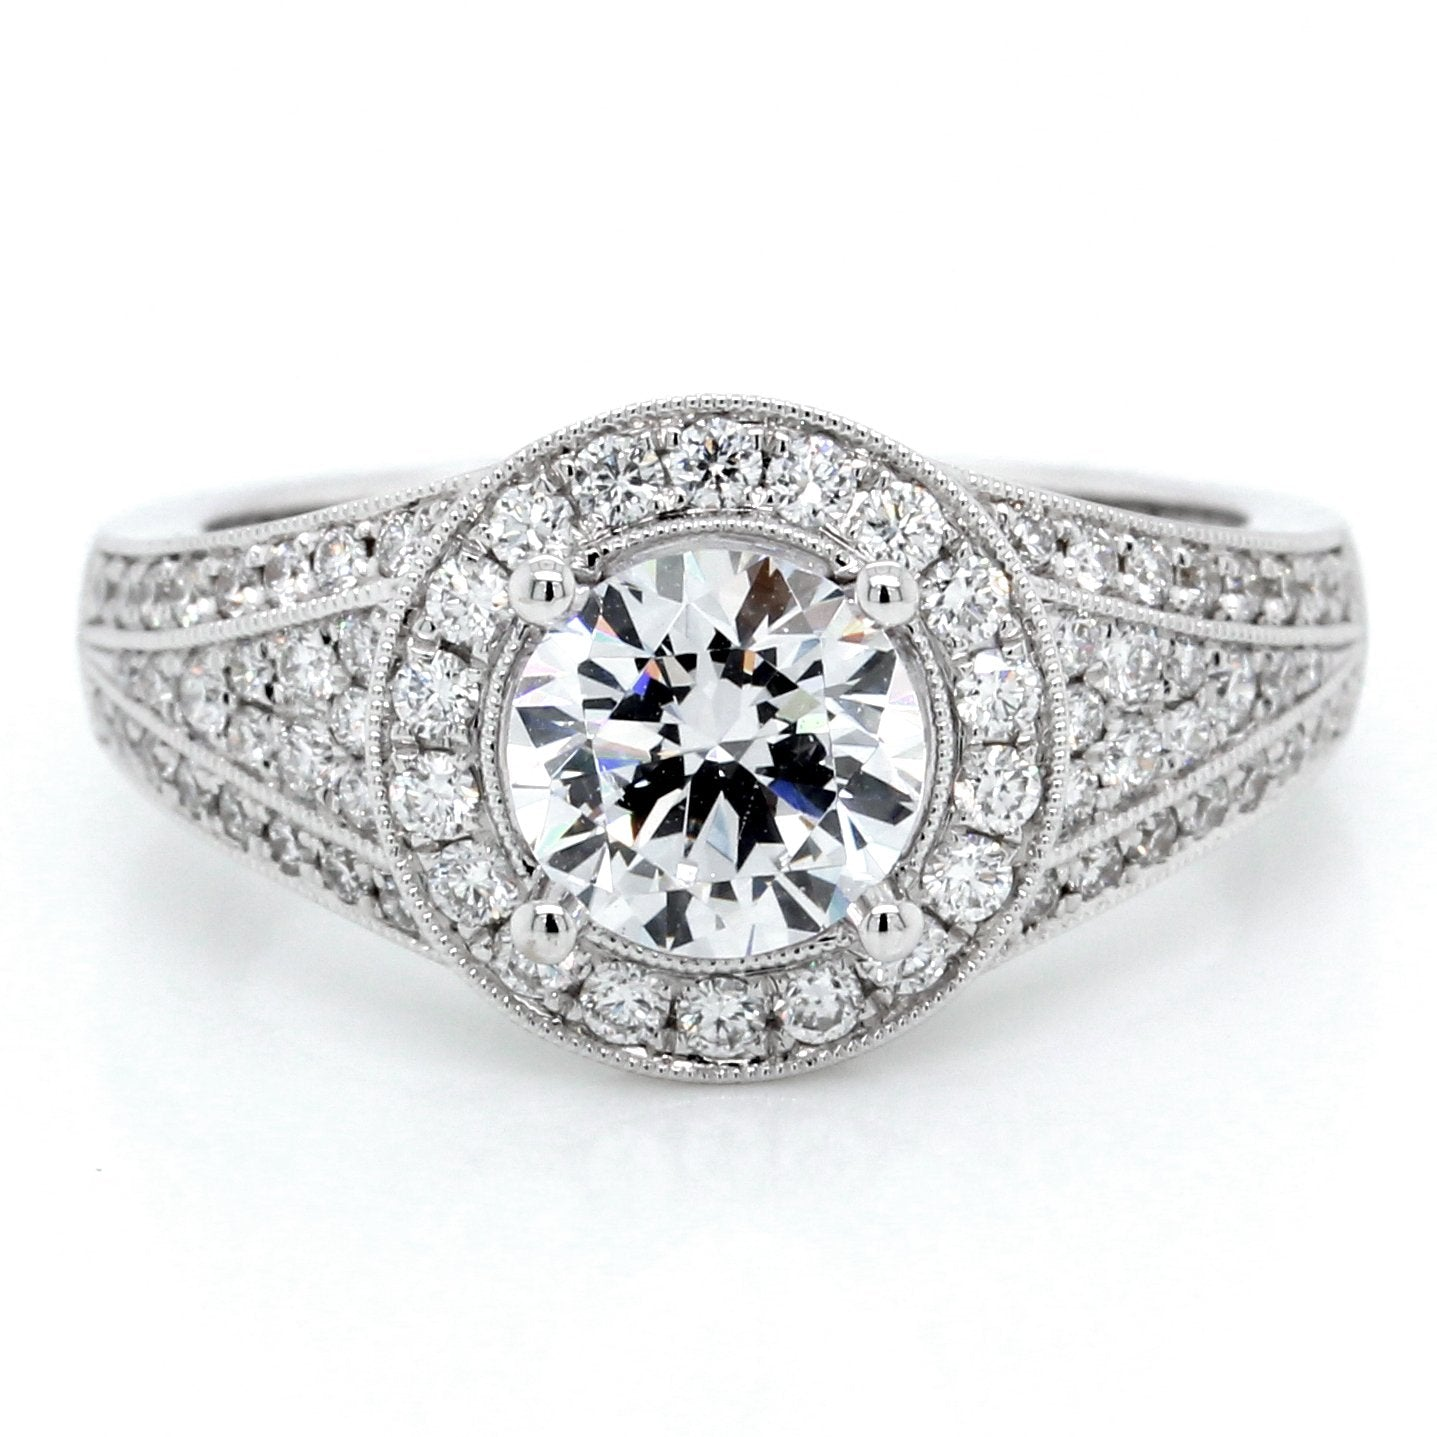 18K White Gold Vintage Halo Milgrain Engagement Ring